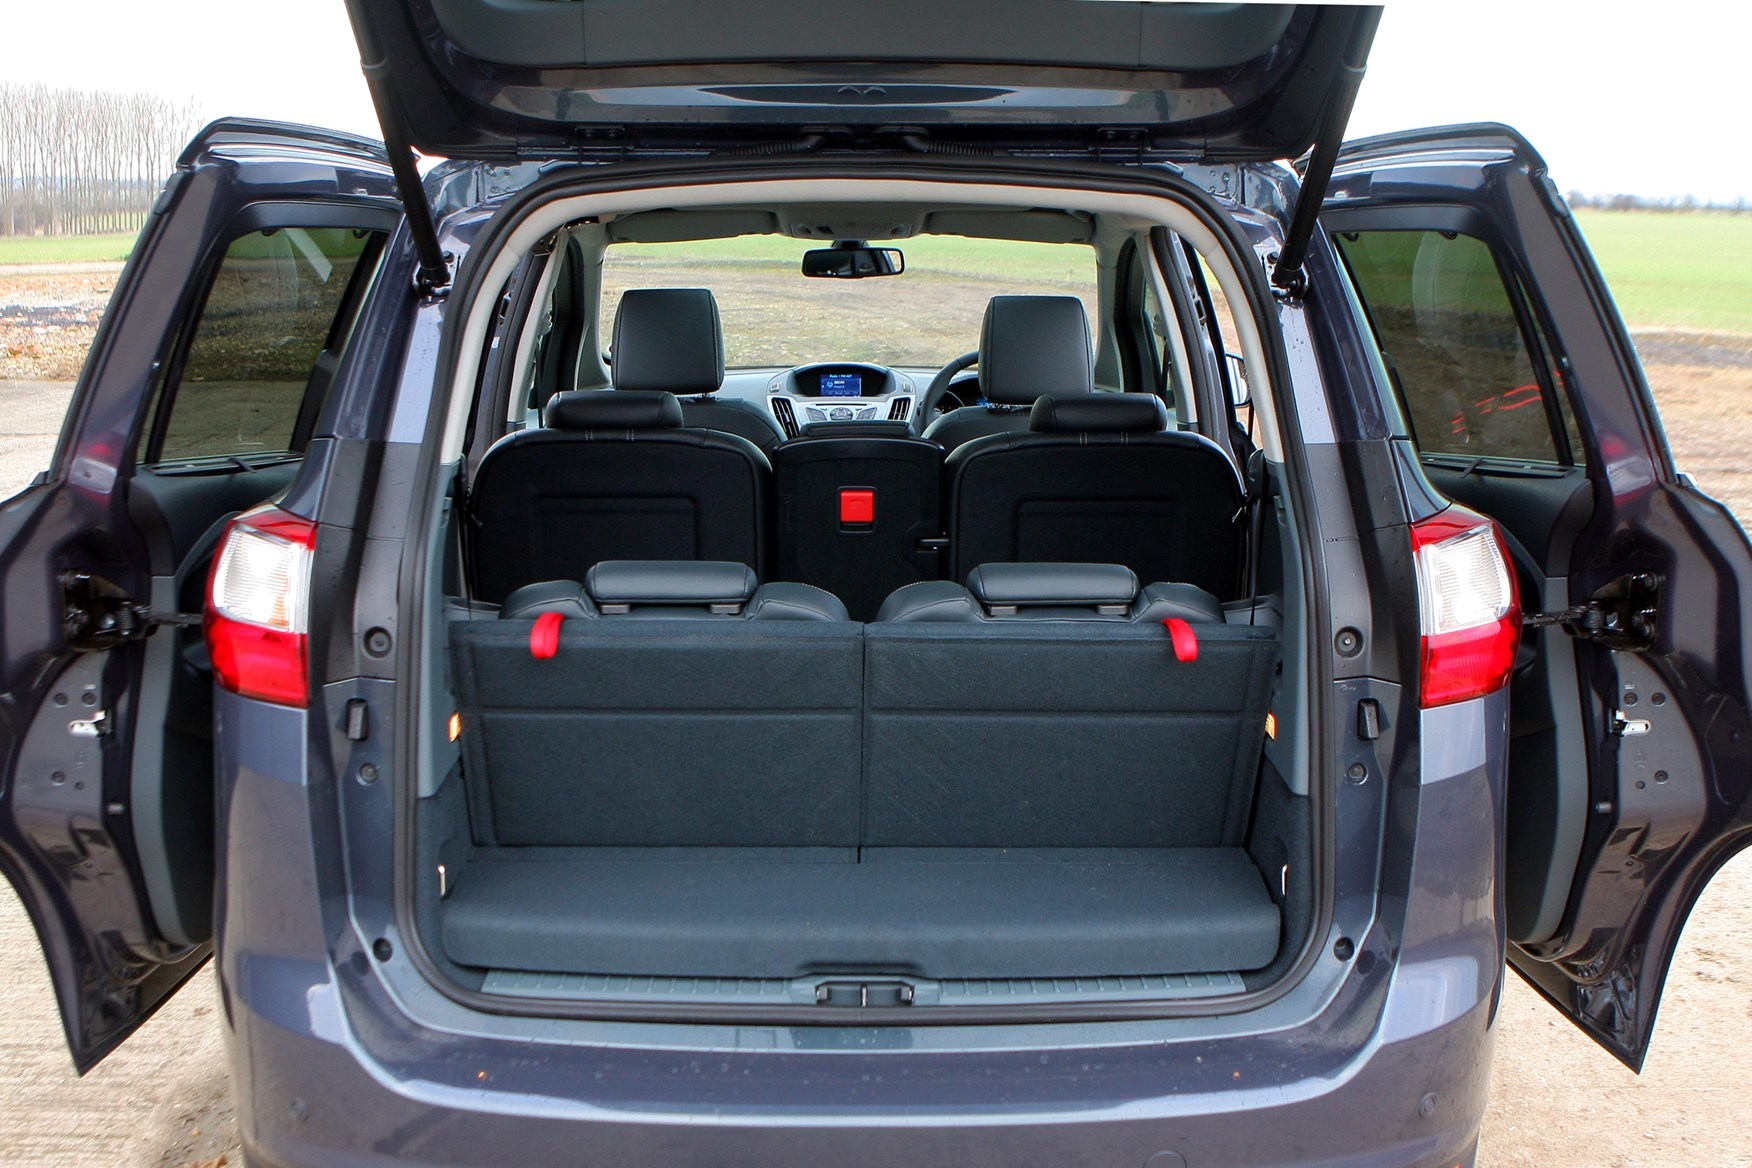 Ford Focus Cargo Space